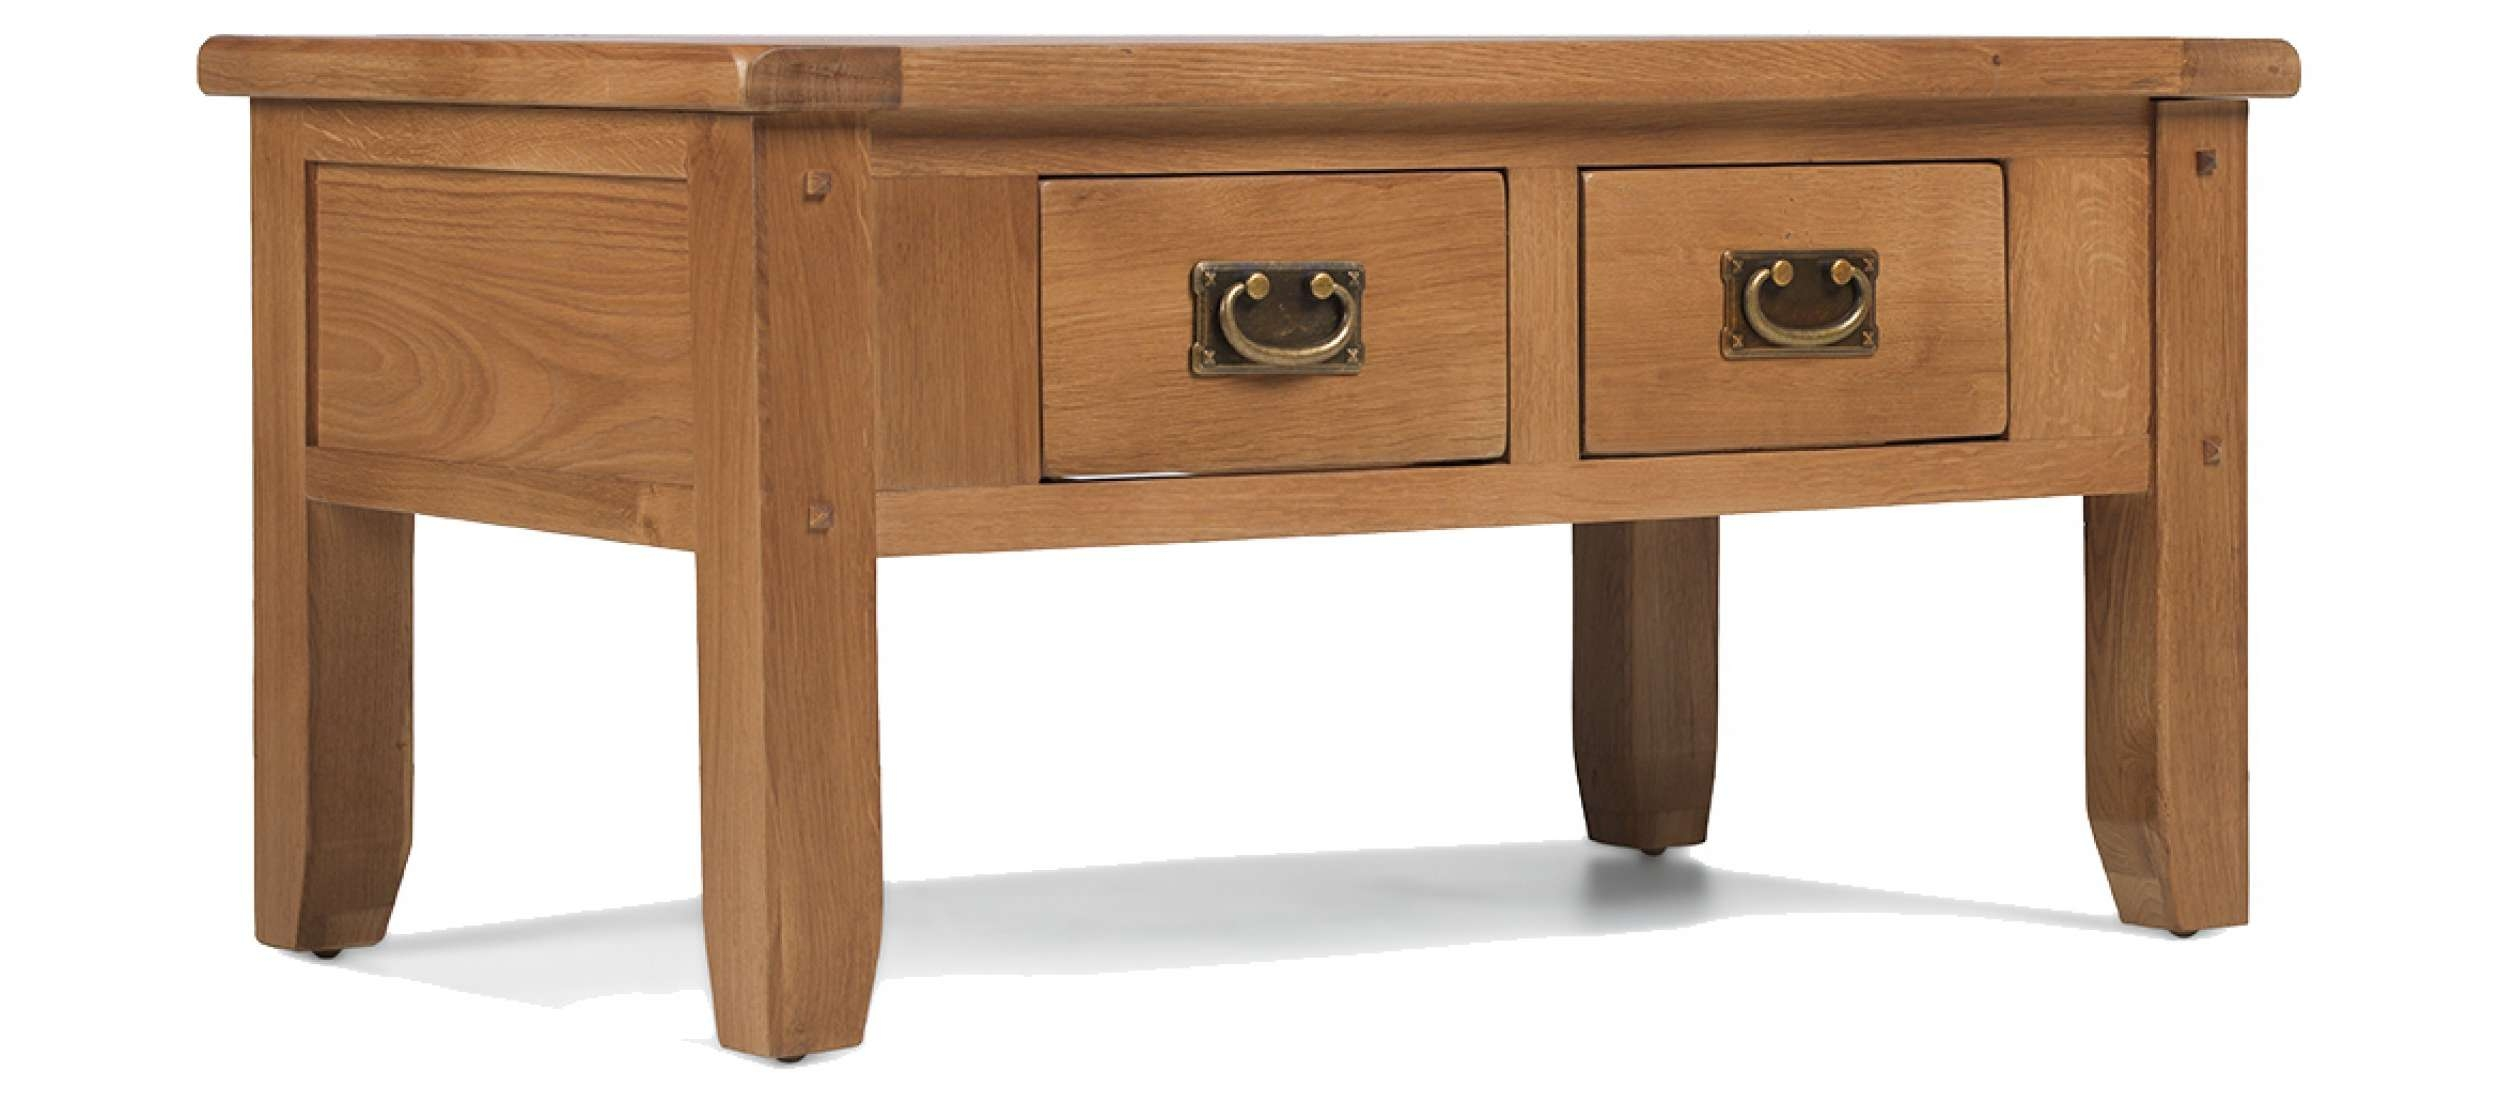 Most Recent Round Coffee Tables With Drawers Inside Coffee Table : Magnificent Small Round Coffee Table Solid Wood (View 20 of 20)